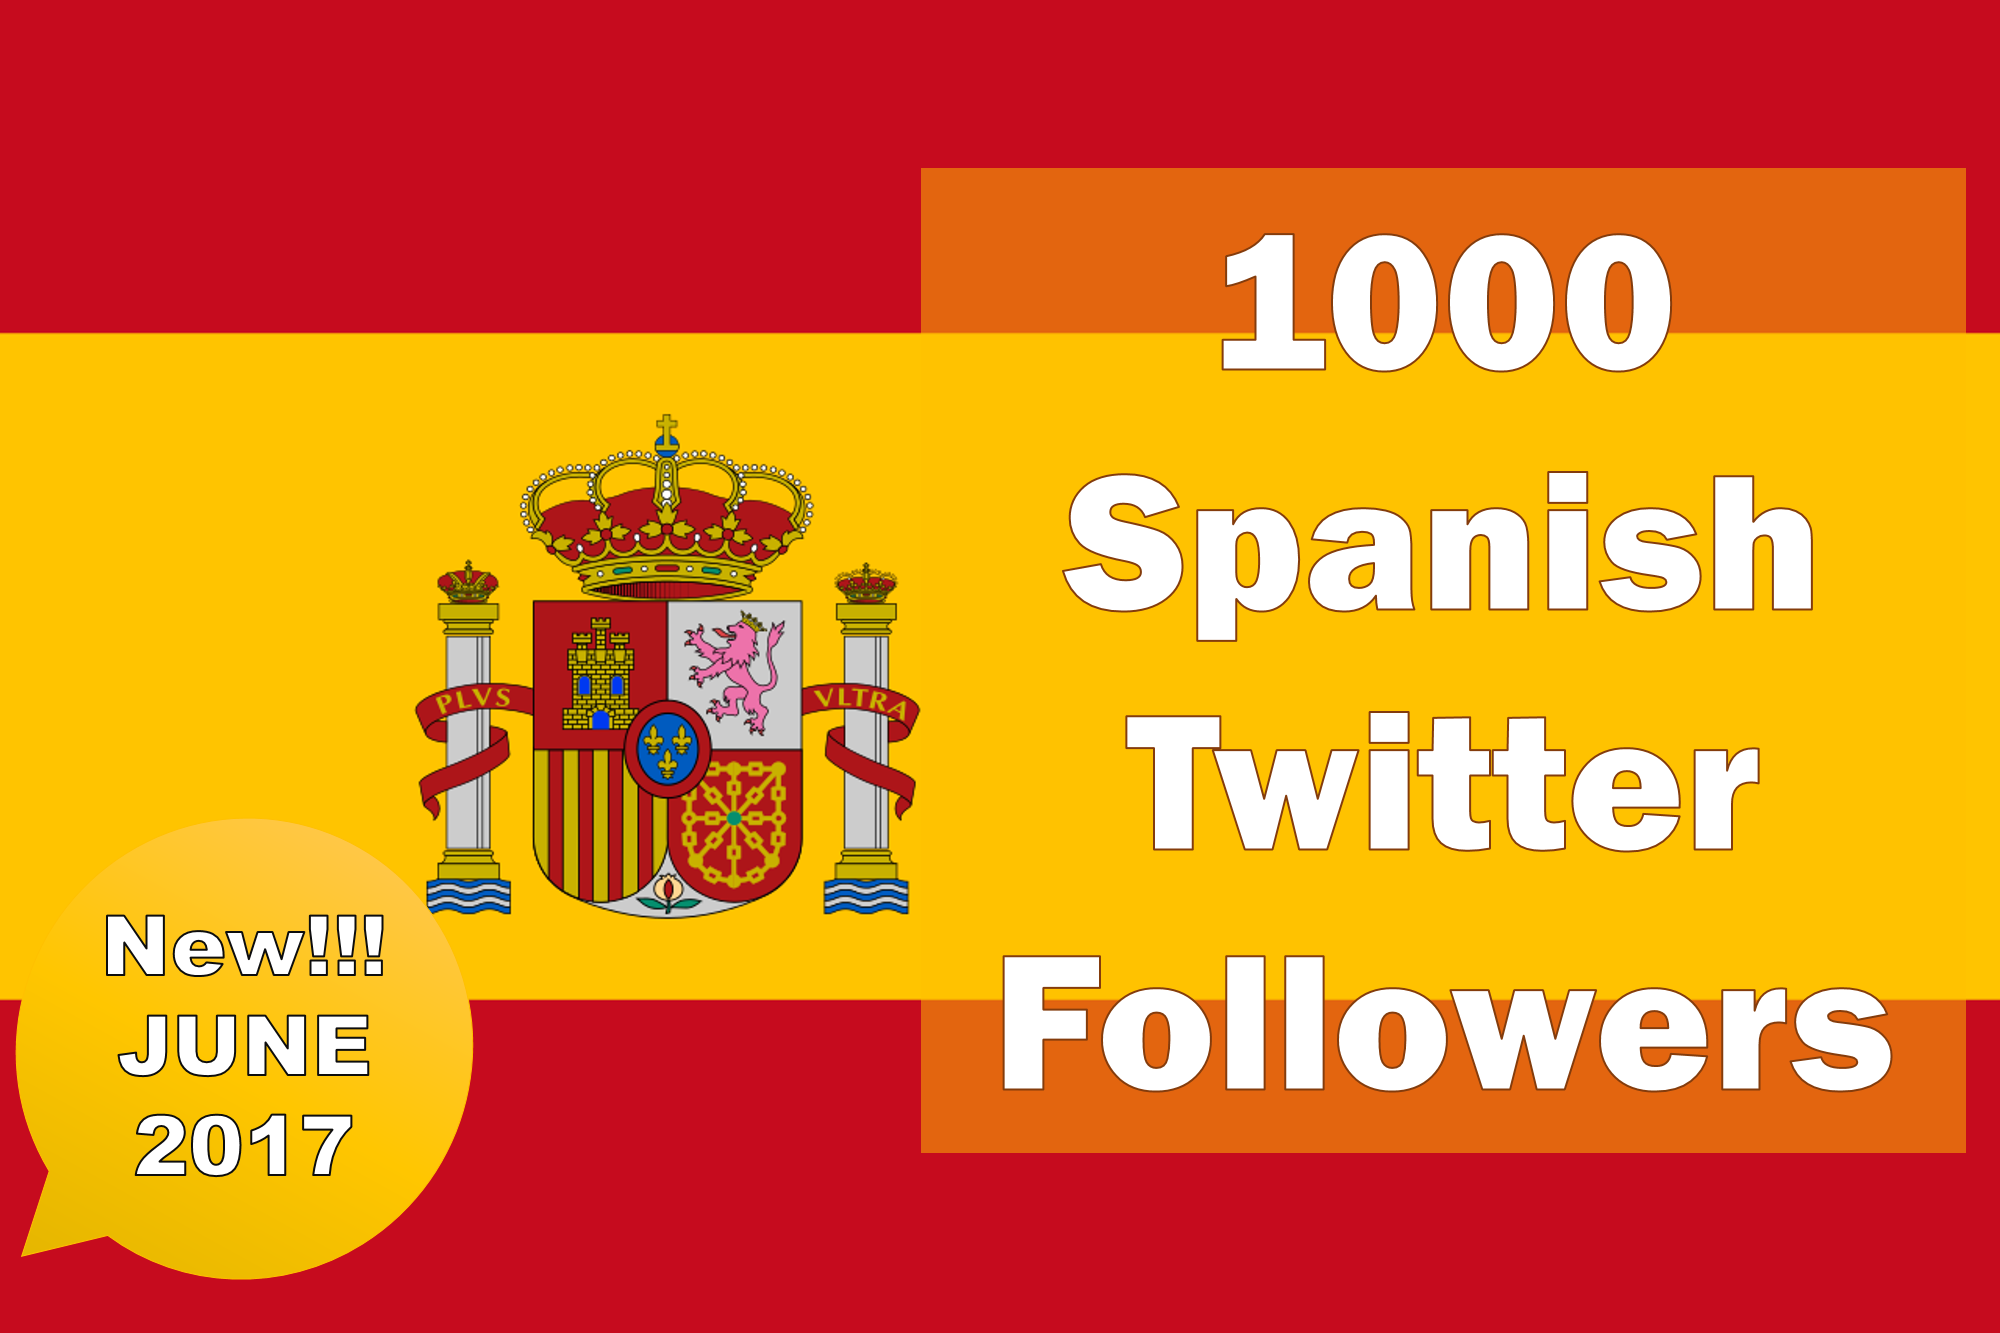 Promote and Provide 1000 Spanish Twitter Followers